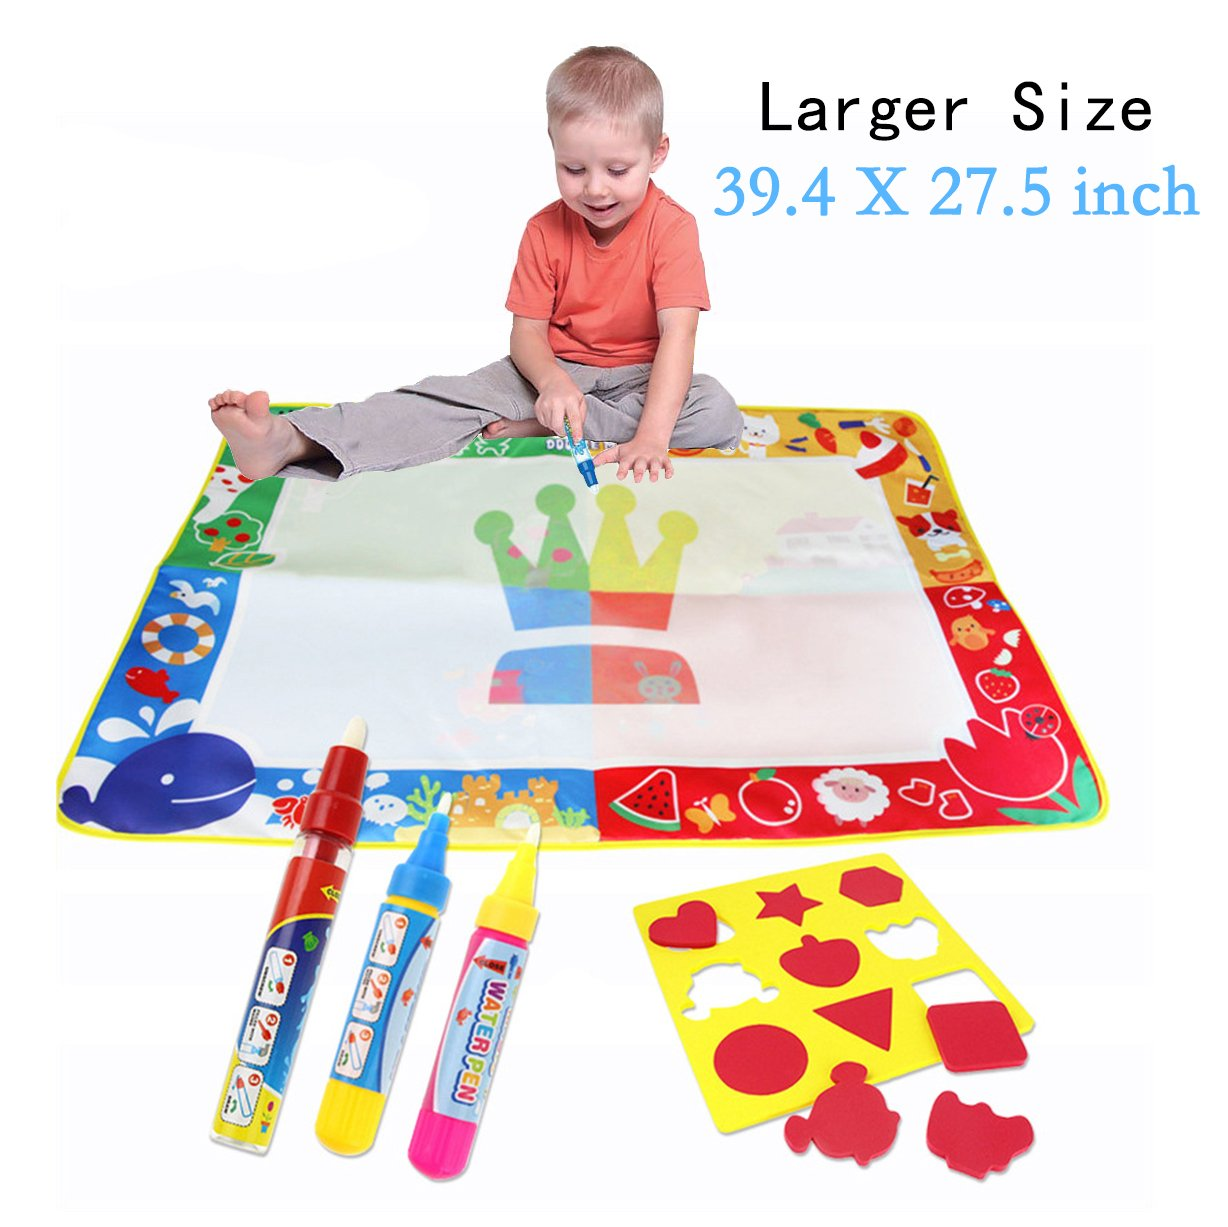 dOvOb Water doodle Mat - Larger Size (39.4 X 27.5 inch) Drawing Mat with 3 Magic Pens & 9 Stamps - Painting Pad Educational Learning Toy | Birthday Gifts for Kids(Boys | Girls)Age 2 3 4 5 6+ Years Old